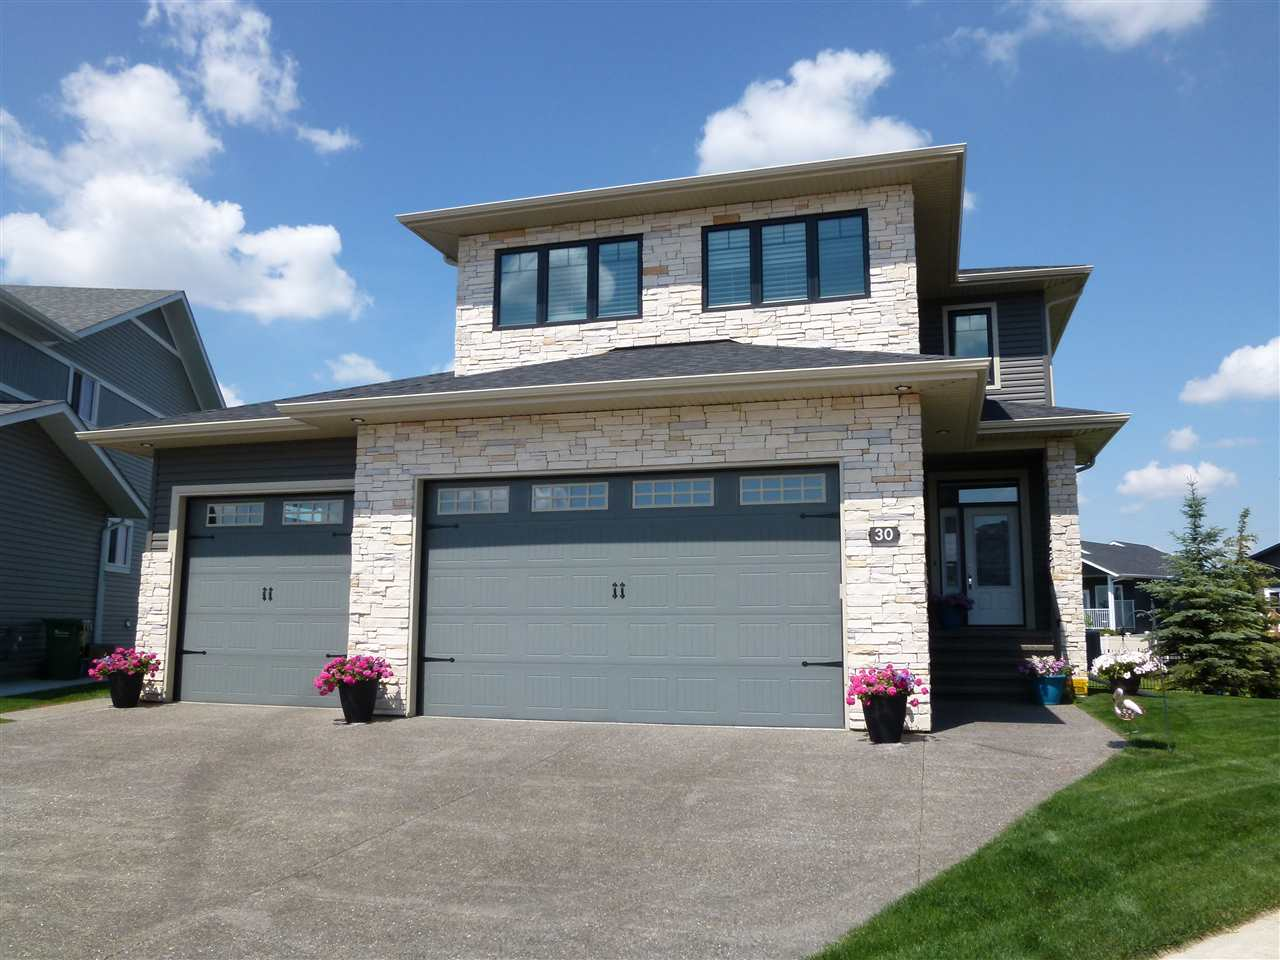 Main Photo: 30 Victory Close: Red Deer House for sale : MLS®# E4102842